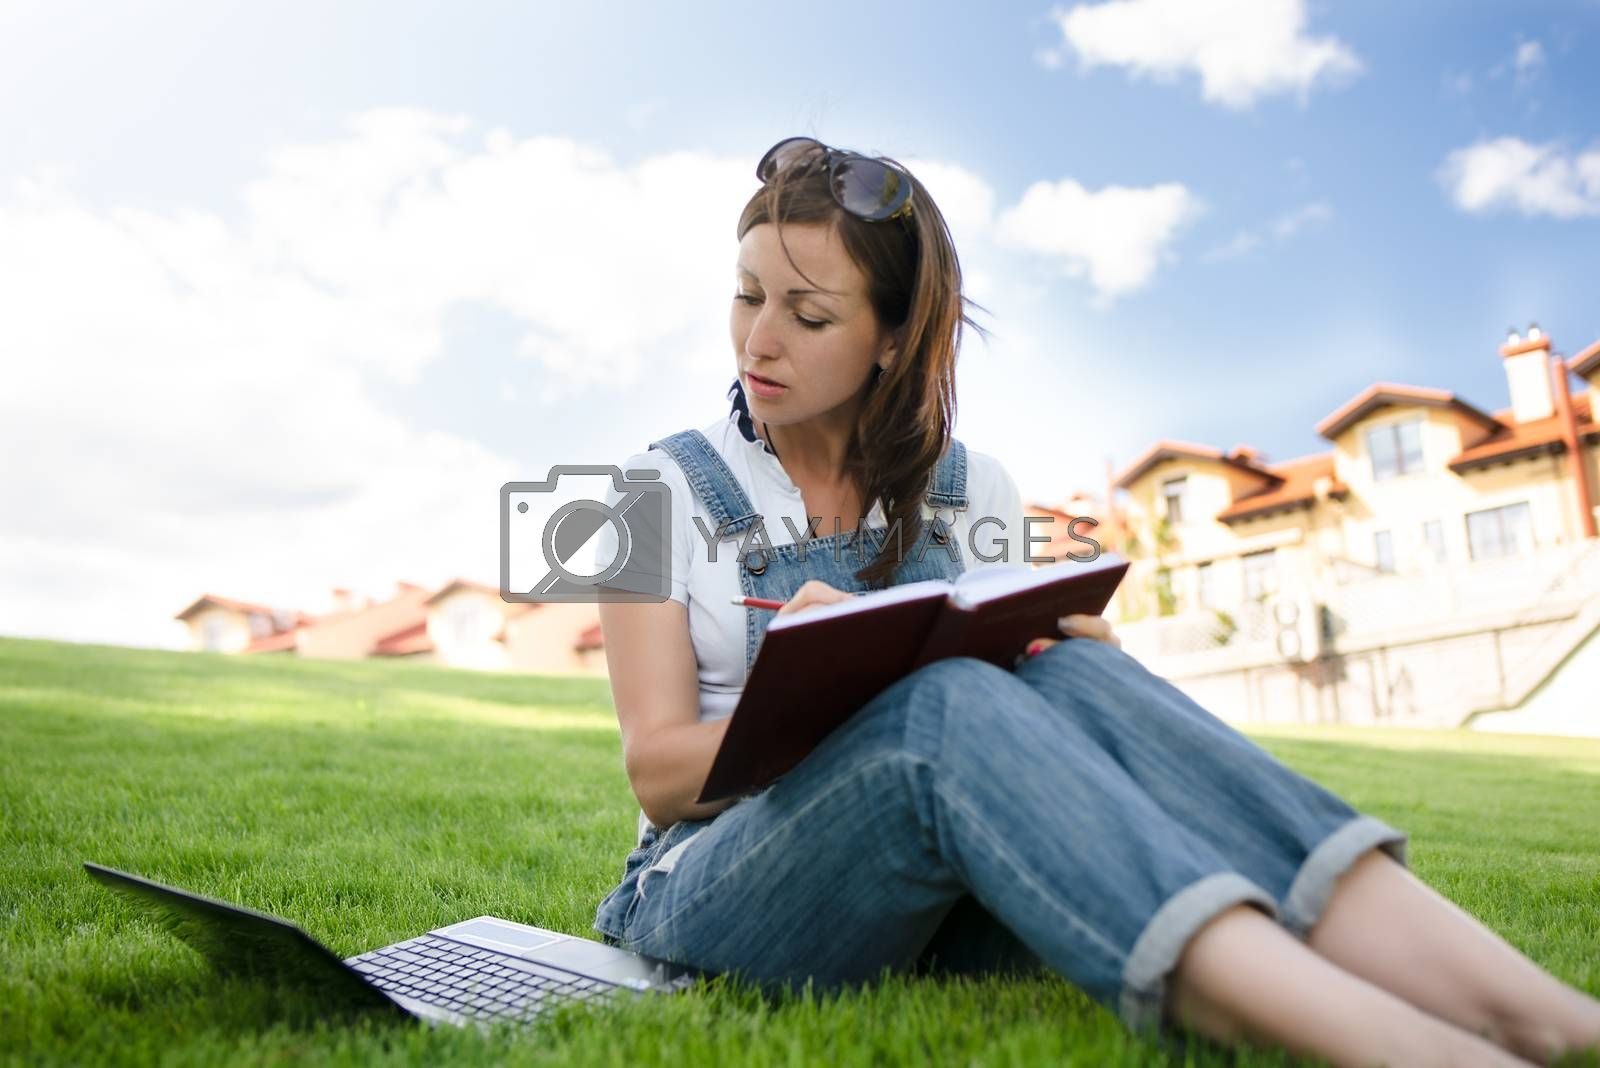 pretty woman sitting on green grass in park with laptop on legs, spending summer day working outdoor, using laptop and wireless Internet for online work. Lifestyle concept.